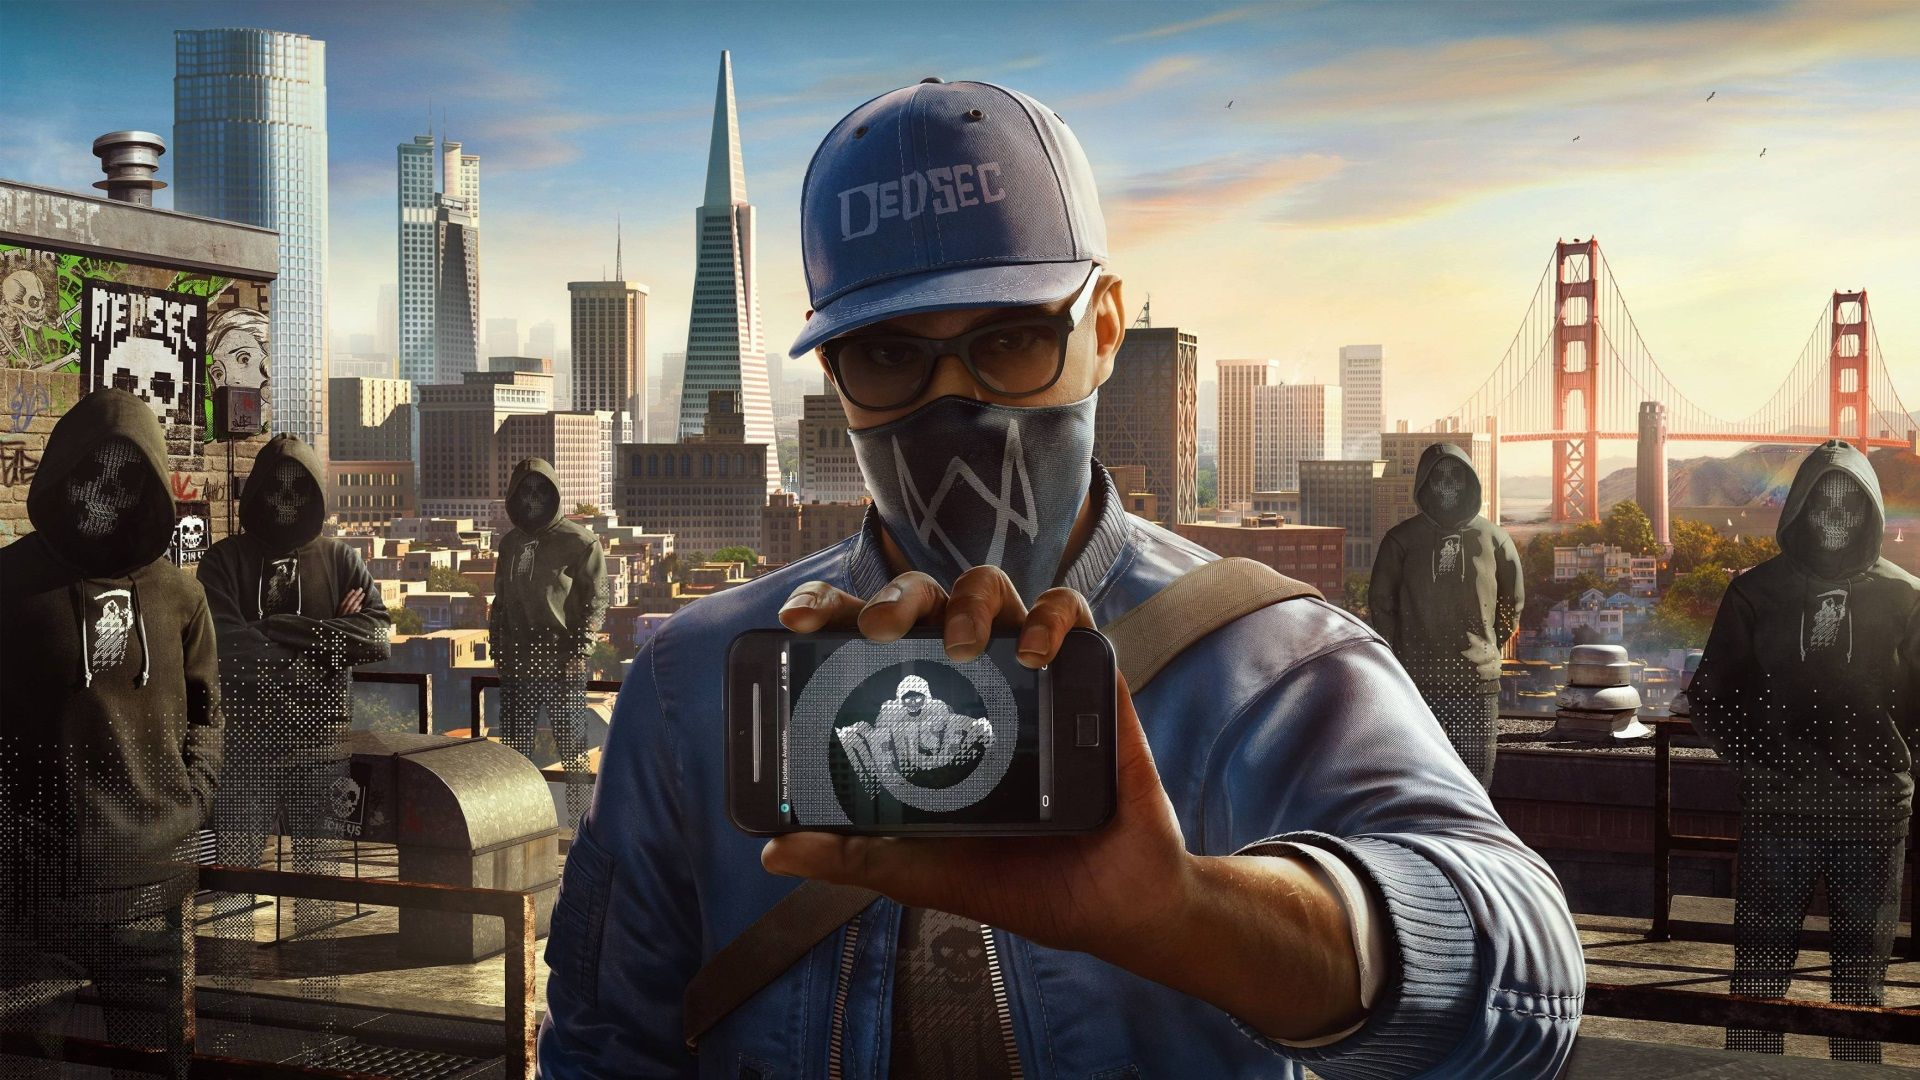 1920x1080 Watch Dogs 2 Wallpaper For Desktop Background Free Download Watch Dogs Watchdogs 2 Dogs